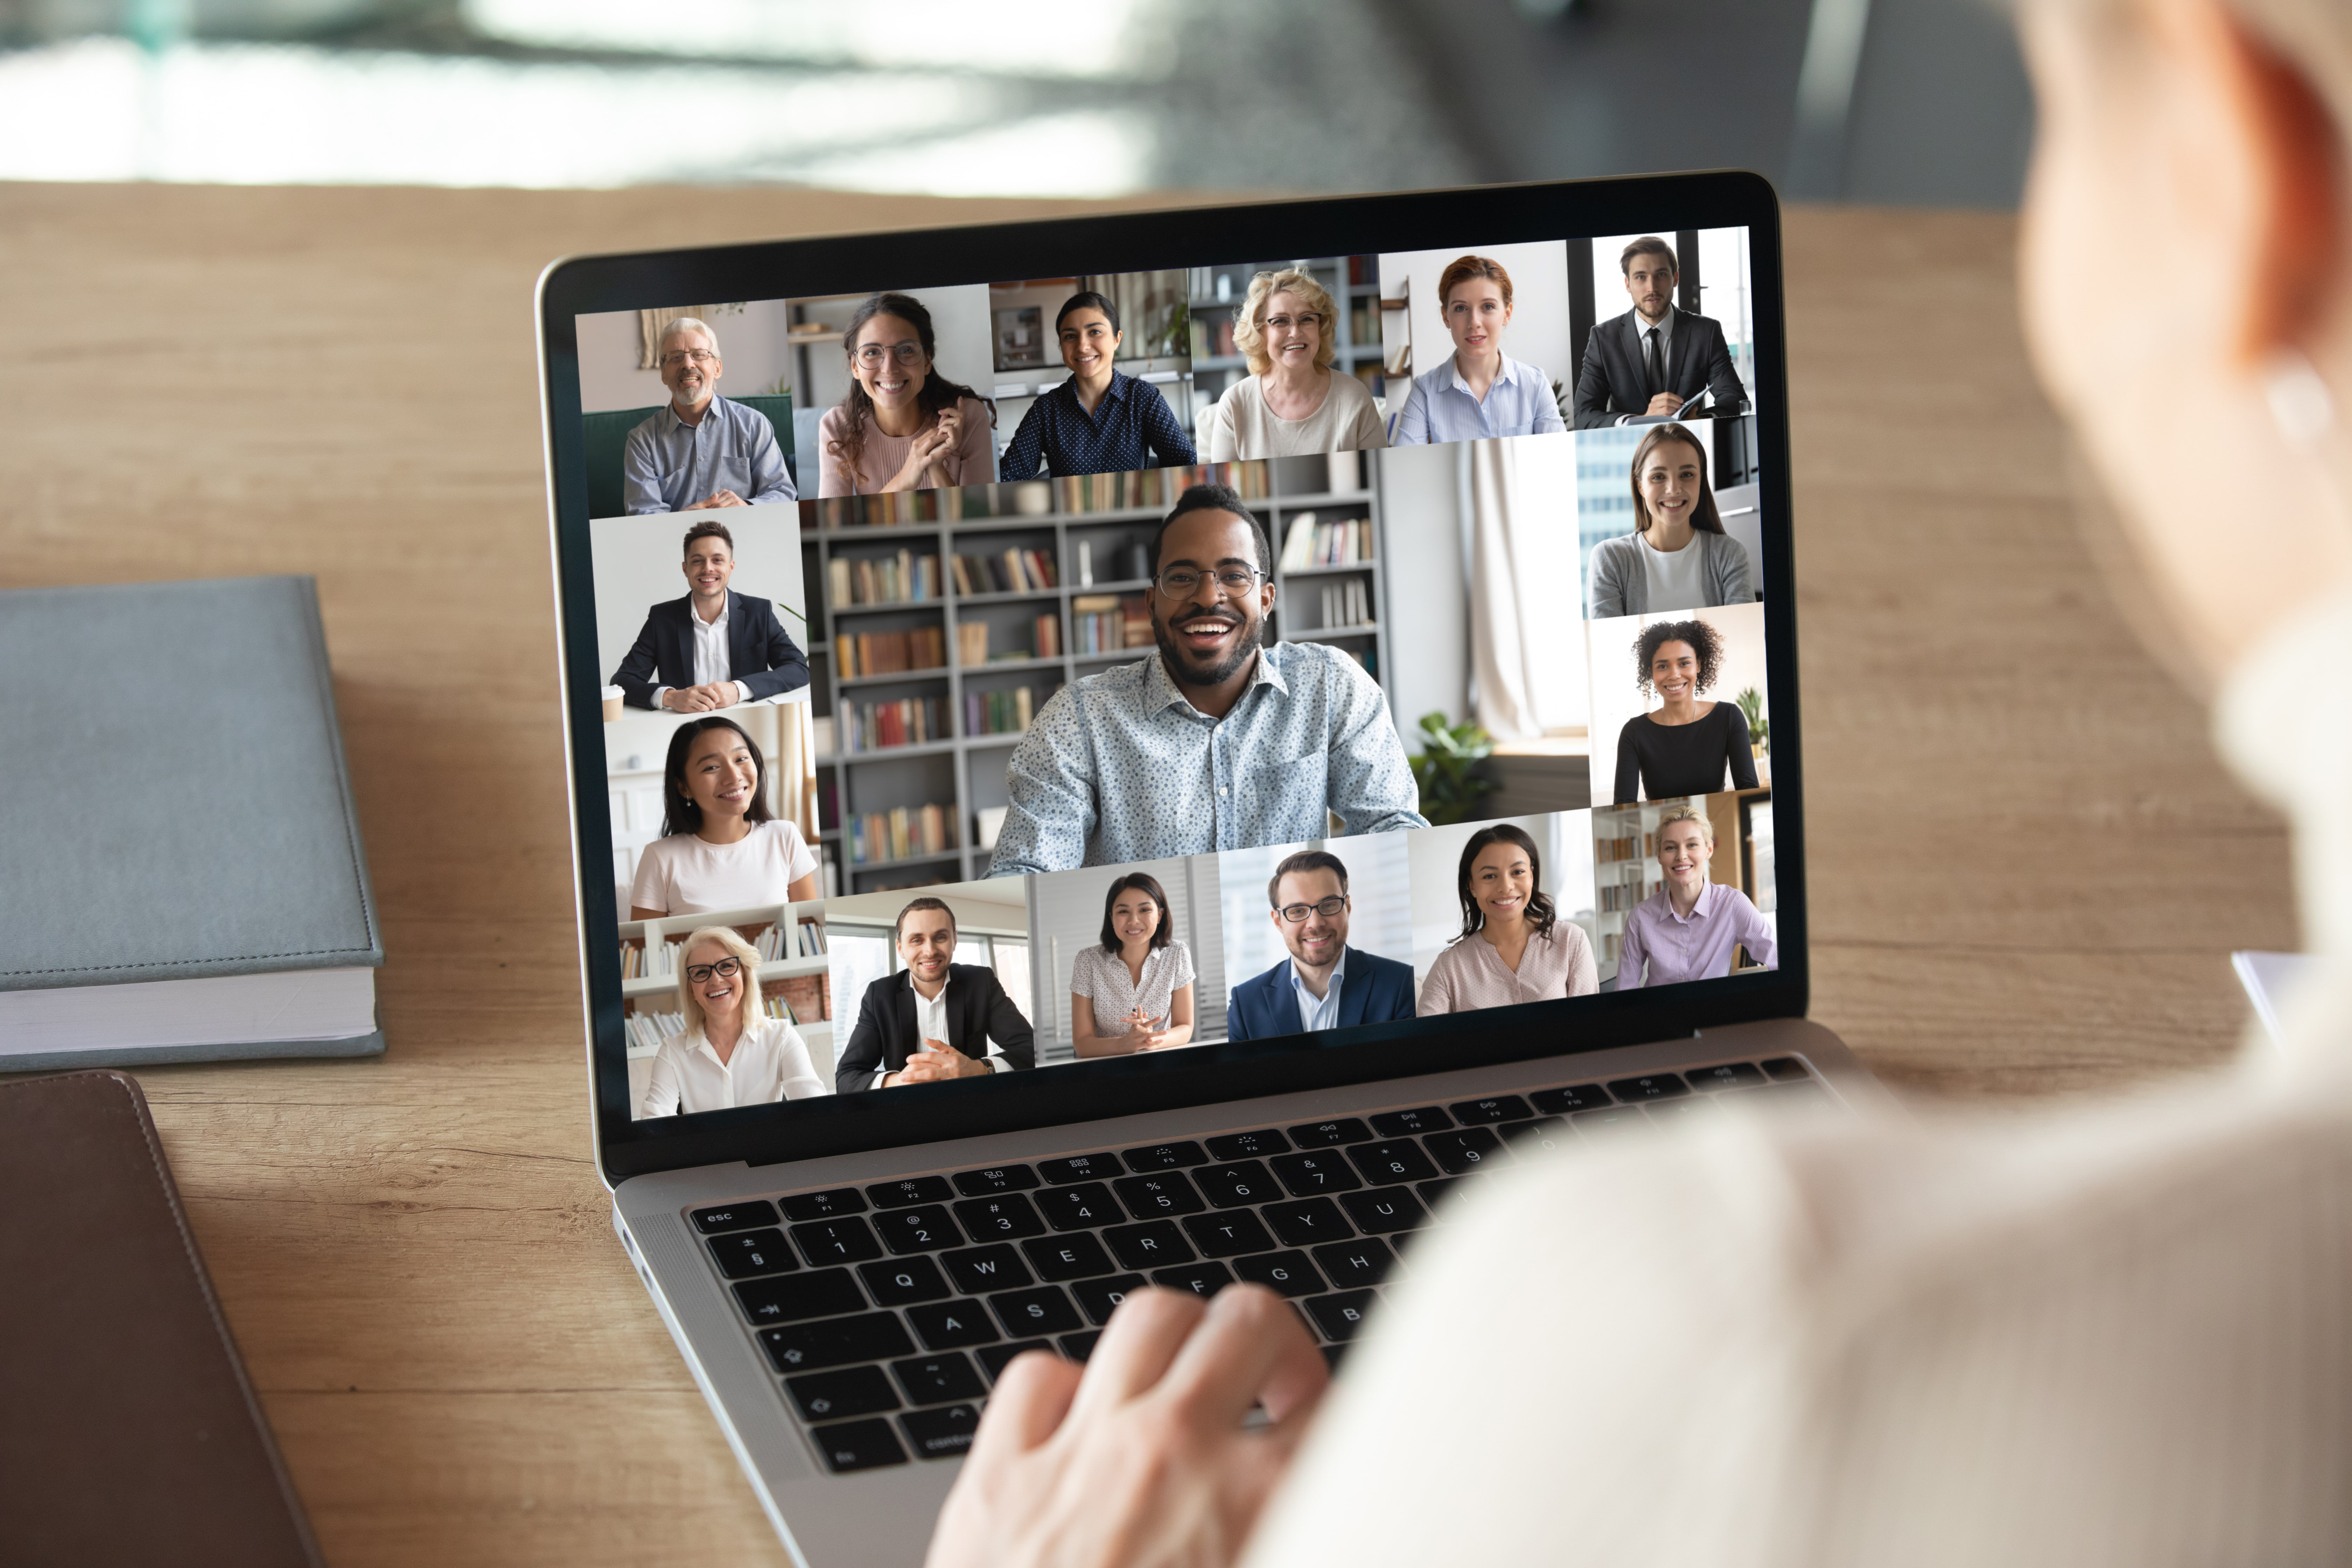 woman-on-video-call-with-friends-on-laptop